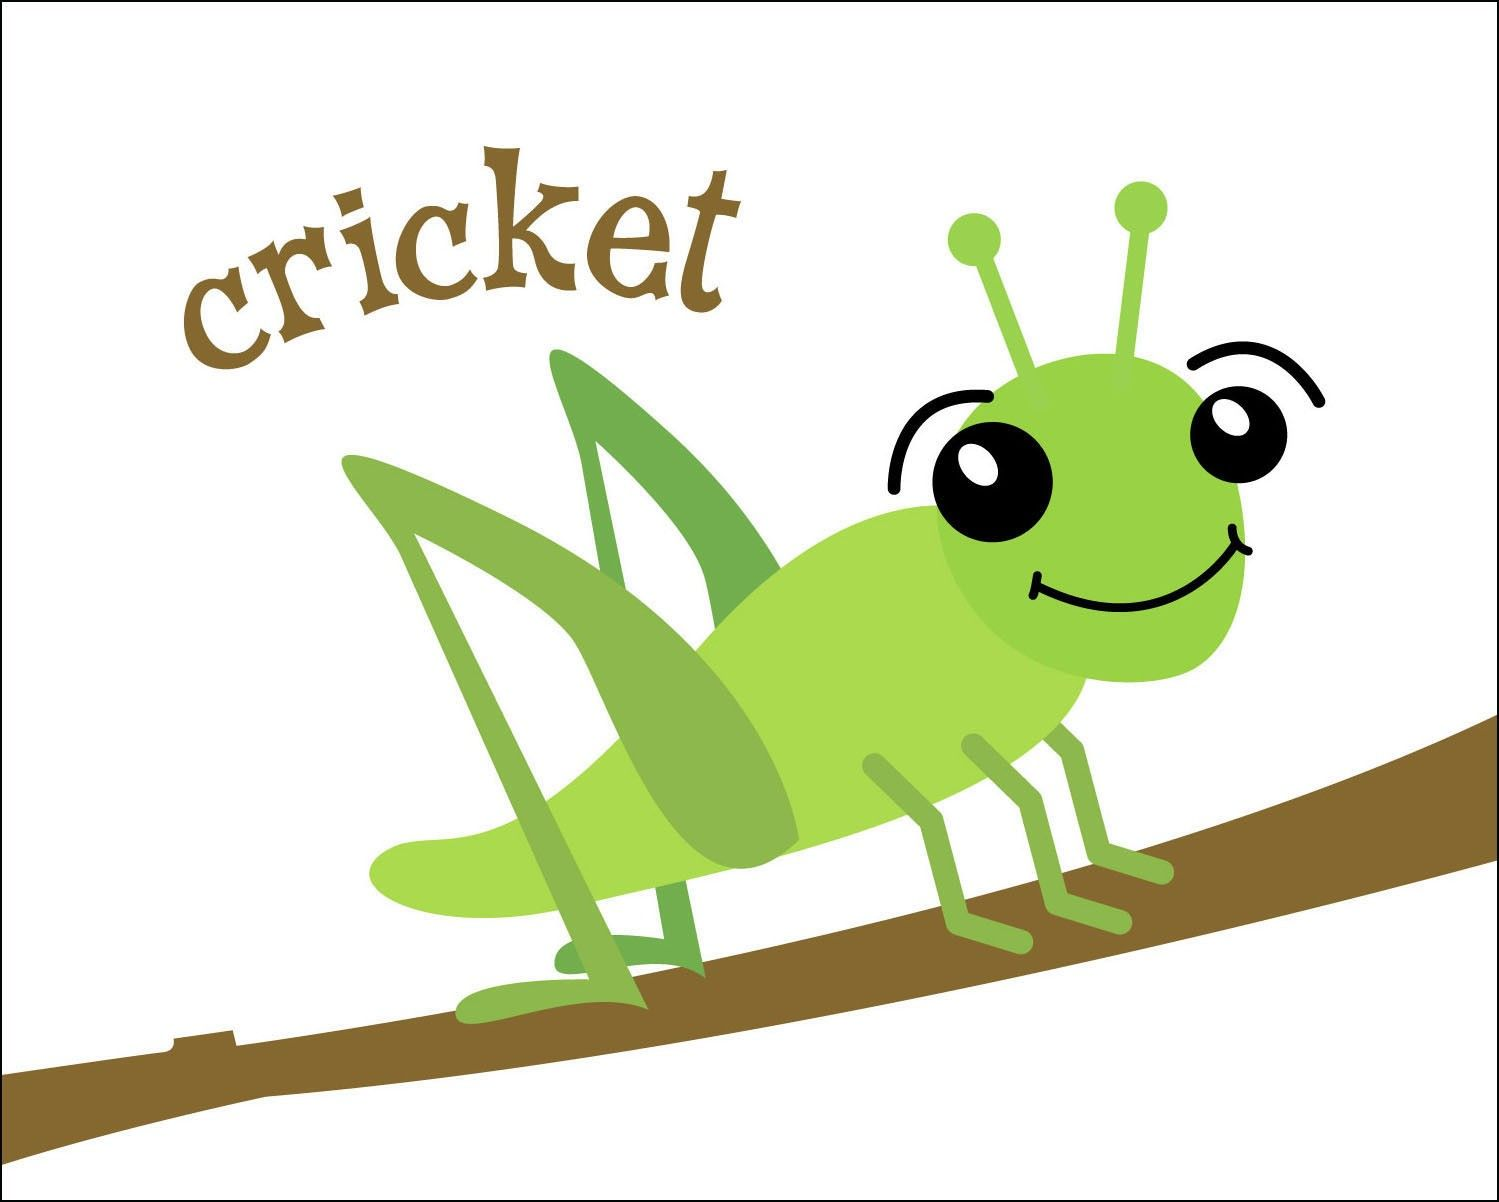 crickets are annoying whether in garden or home and hiring an